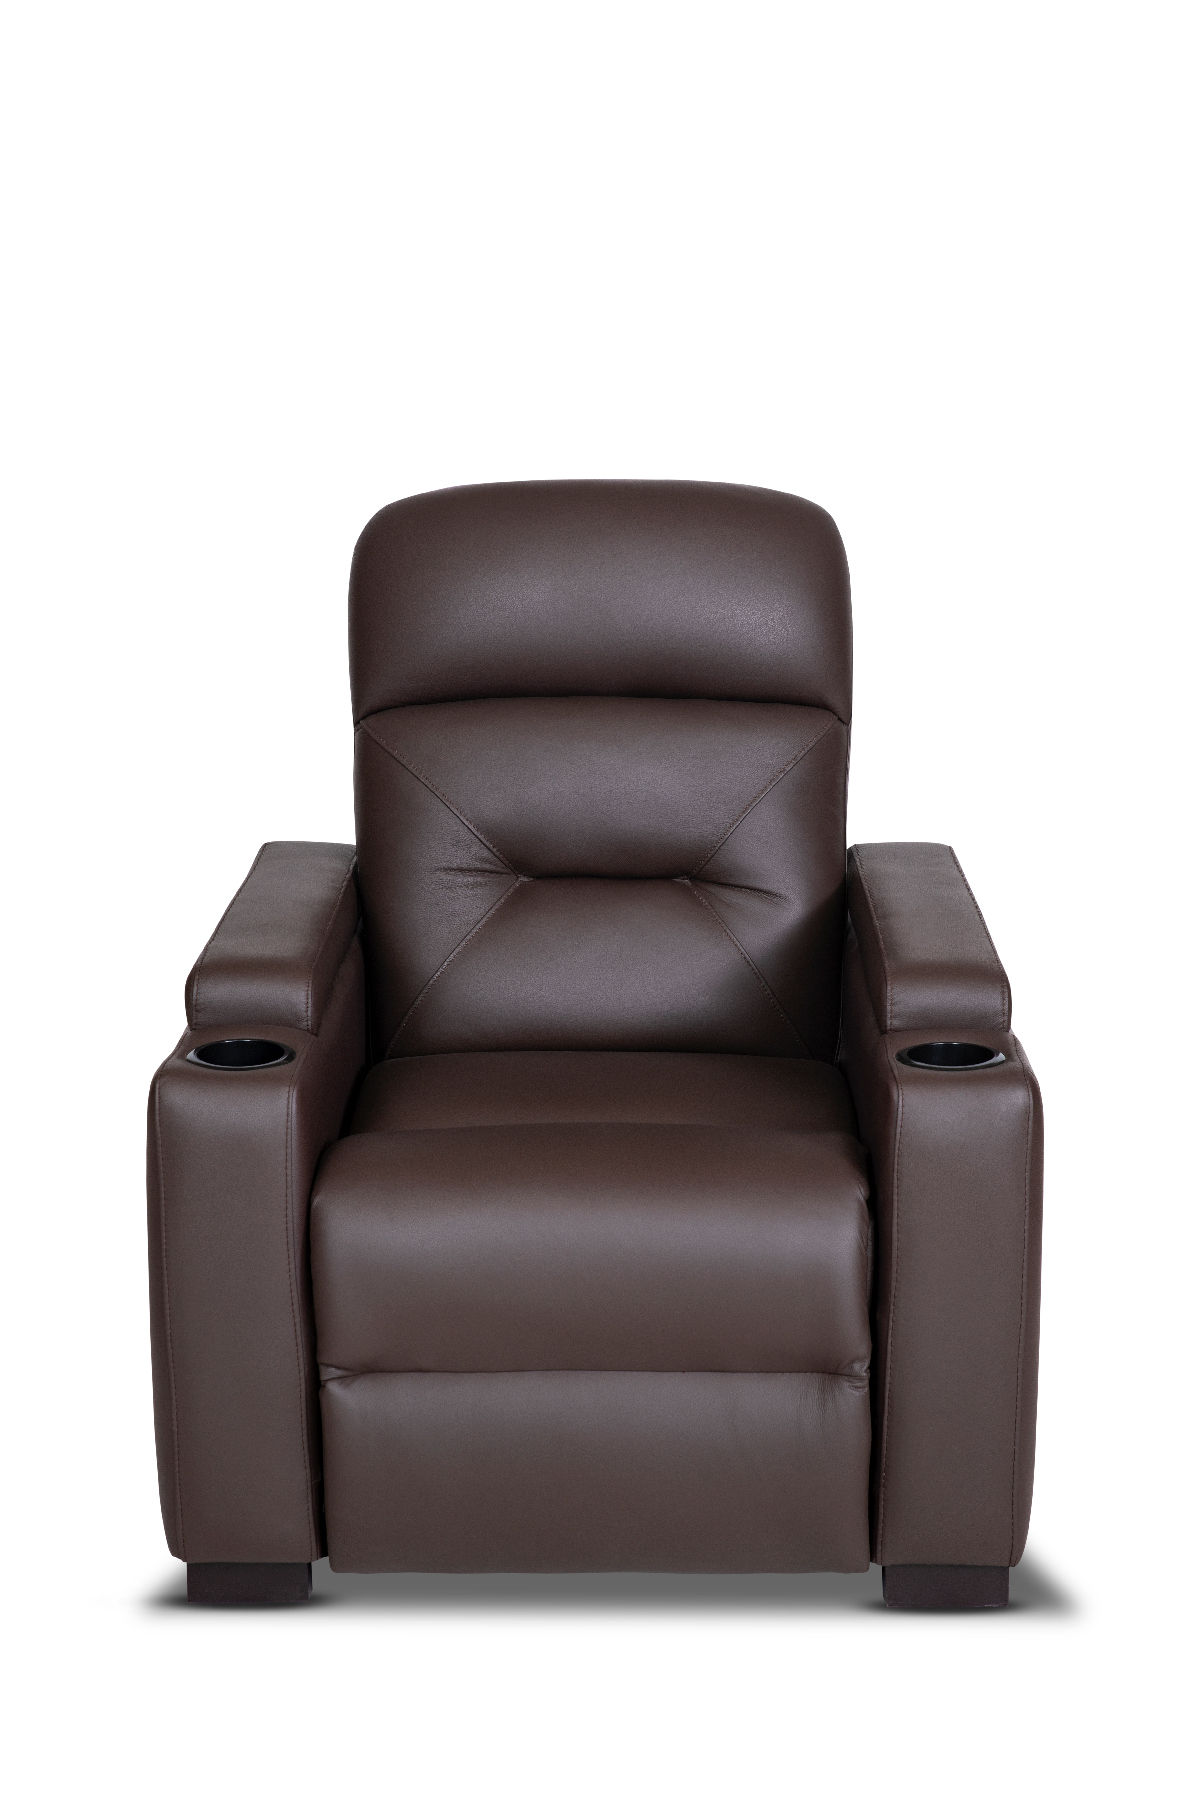 Buy SPARTA Recliner Sofa Online at Best Prices in India ... on Sparta Outdoor Living id=68542